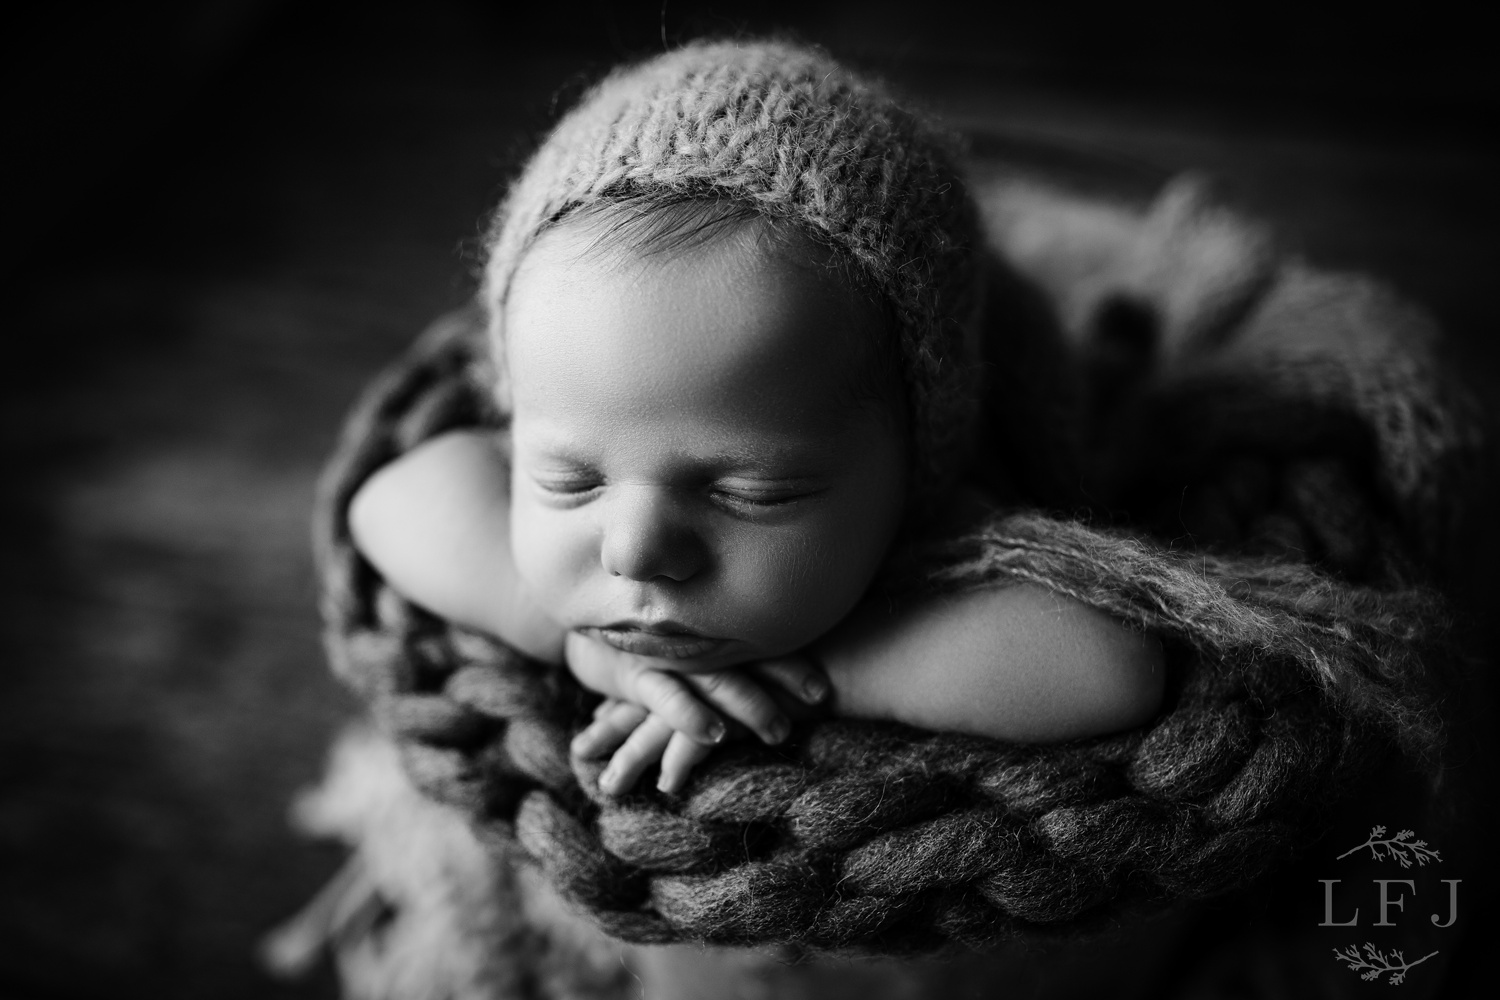 black and white image of baby boy in a bucket